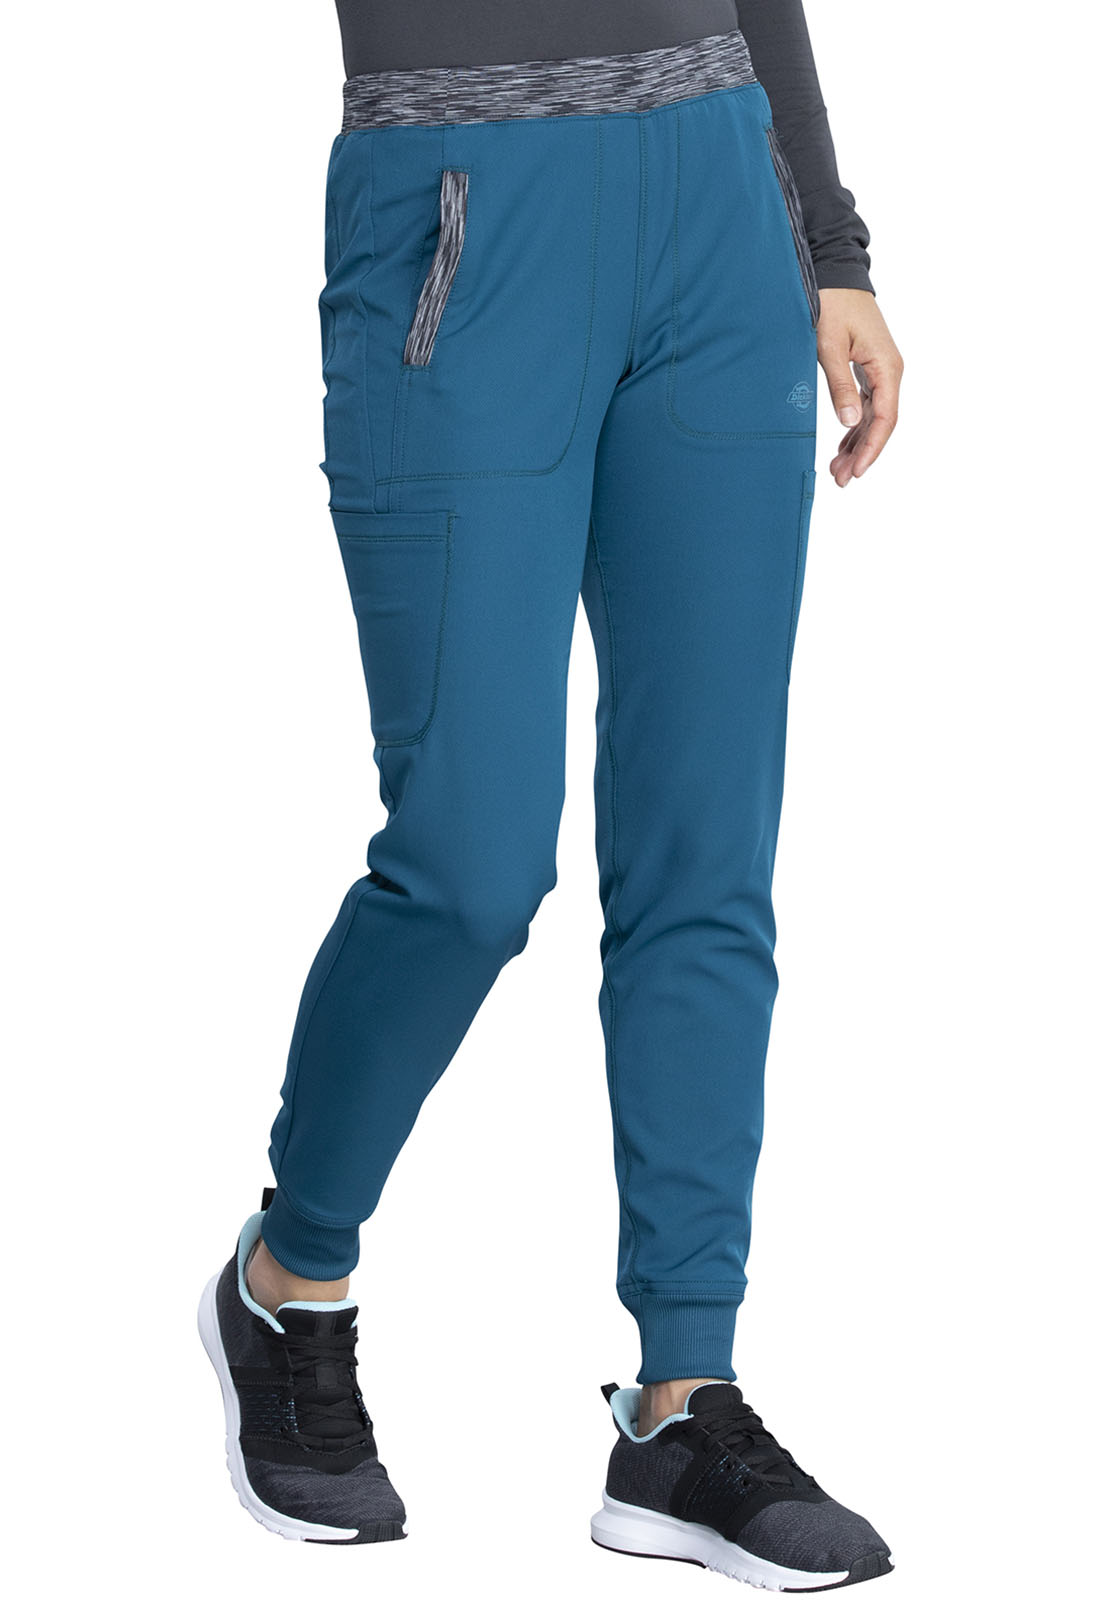 Details about  /Dickies Dynamix Women Natural Rise Tapered Leg Jogger Pant DK185P FREE SHIPPING!